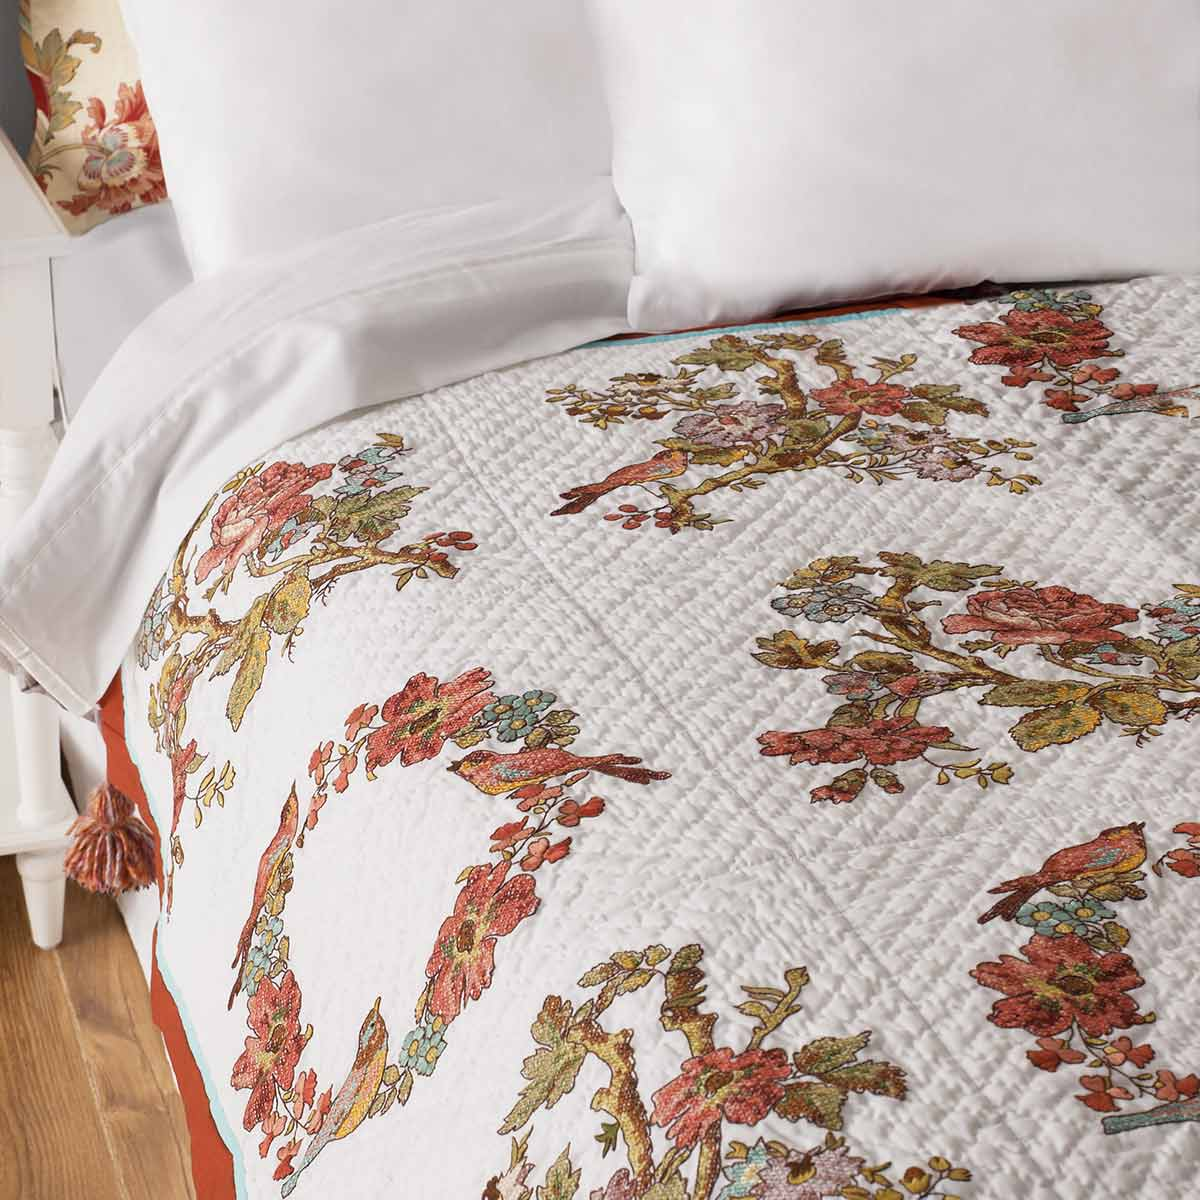 Bucilla ® Waverly ® Charleston Chirp Collection Stamped Quilt Blocks - 47767